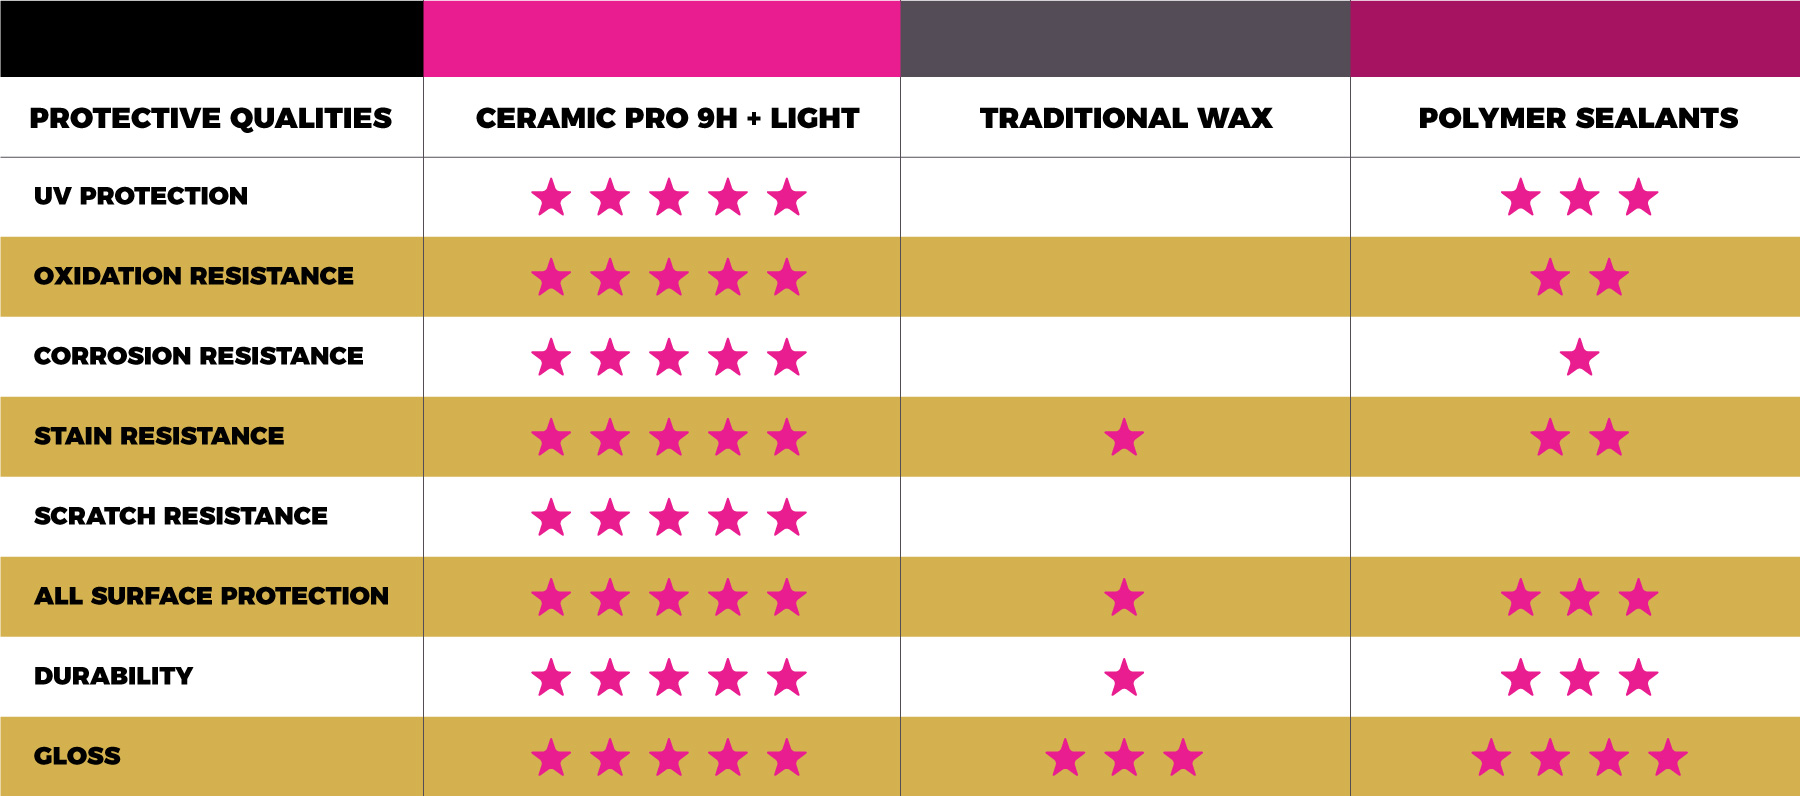 925Tint.com - Ceramic Pro Automotive Comparison